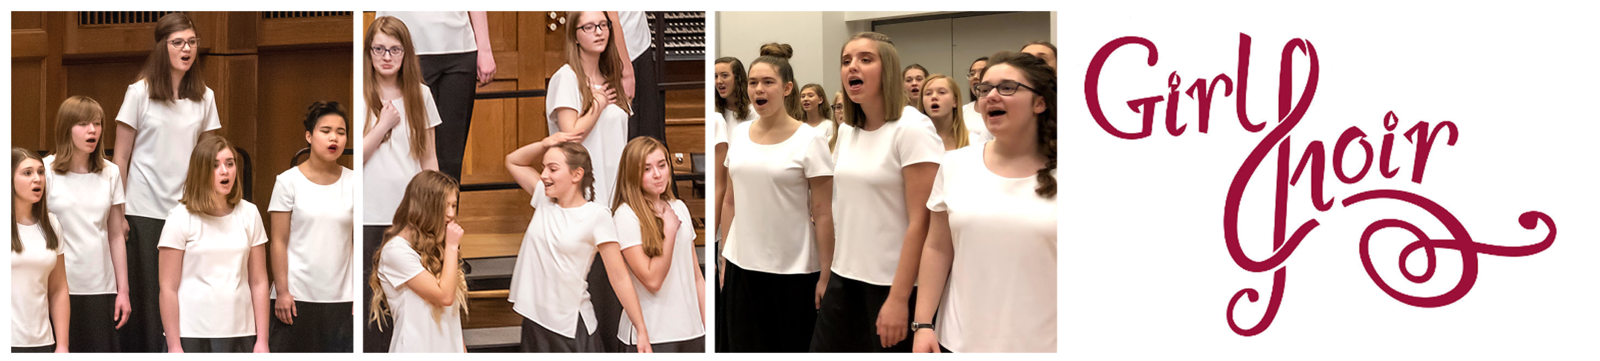 "Three photos: Cantabile students singing during a concert, students posing dramatically and trying not to laugh, Cantabile warming up backstage. The Girl Choir logo follows, the ""C"" stylized to look like a treble clef."